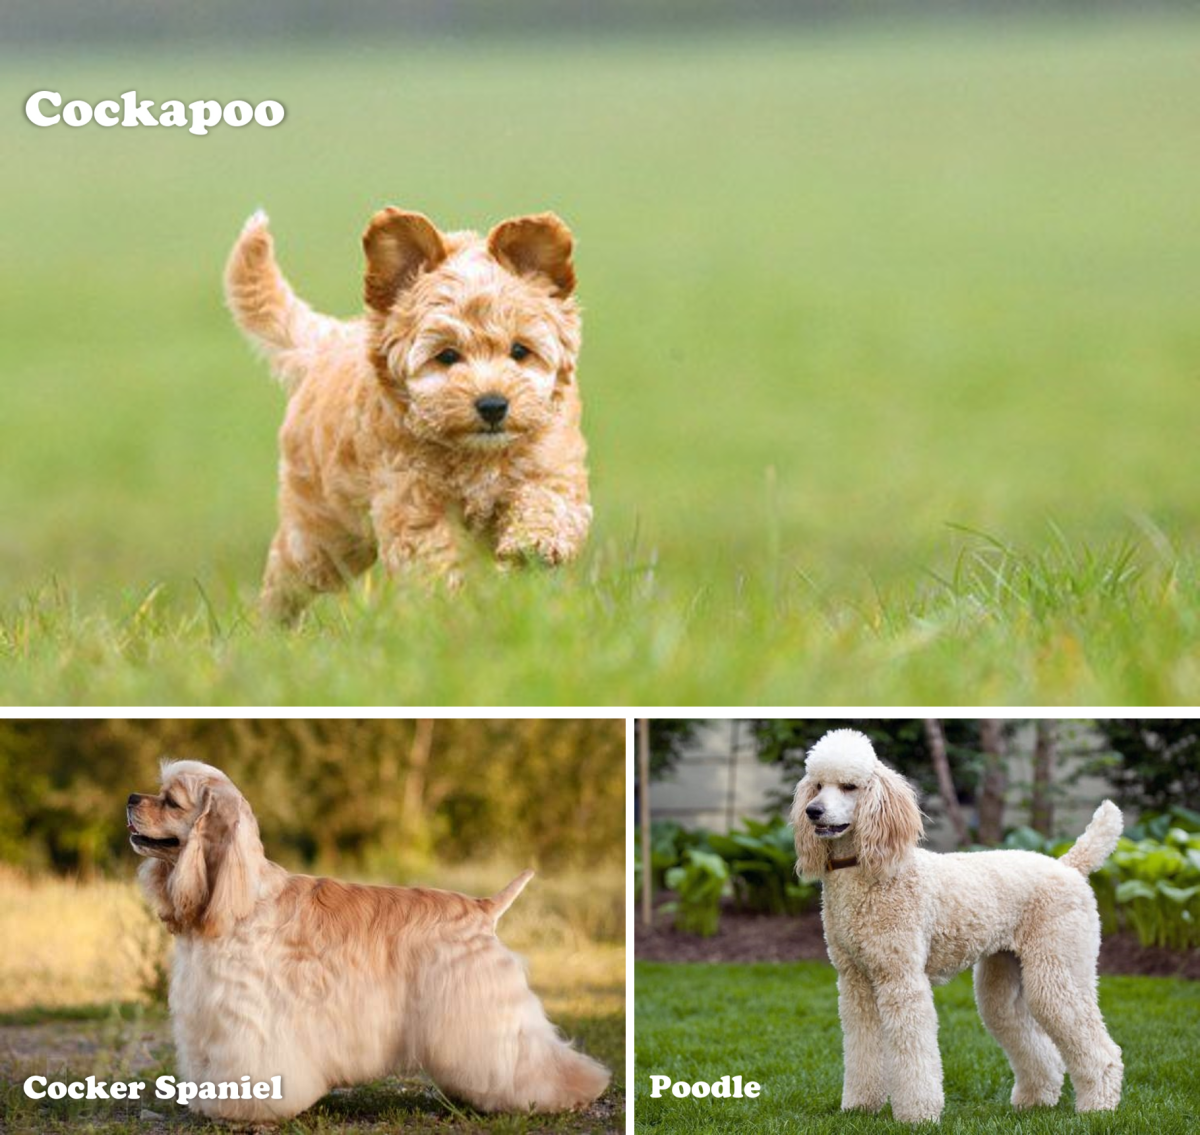 Cockapoo, Cocker Spaniel and Poodle dogs